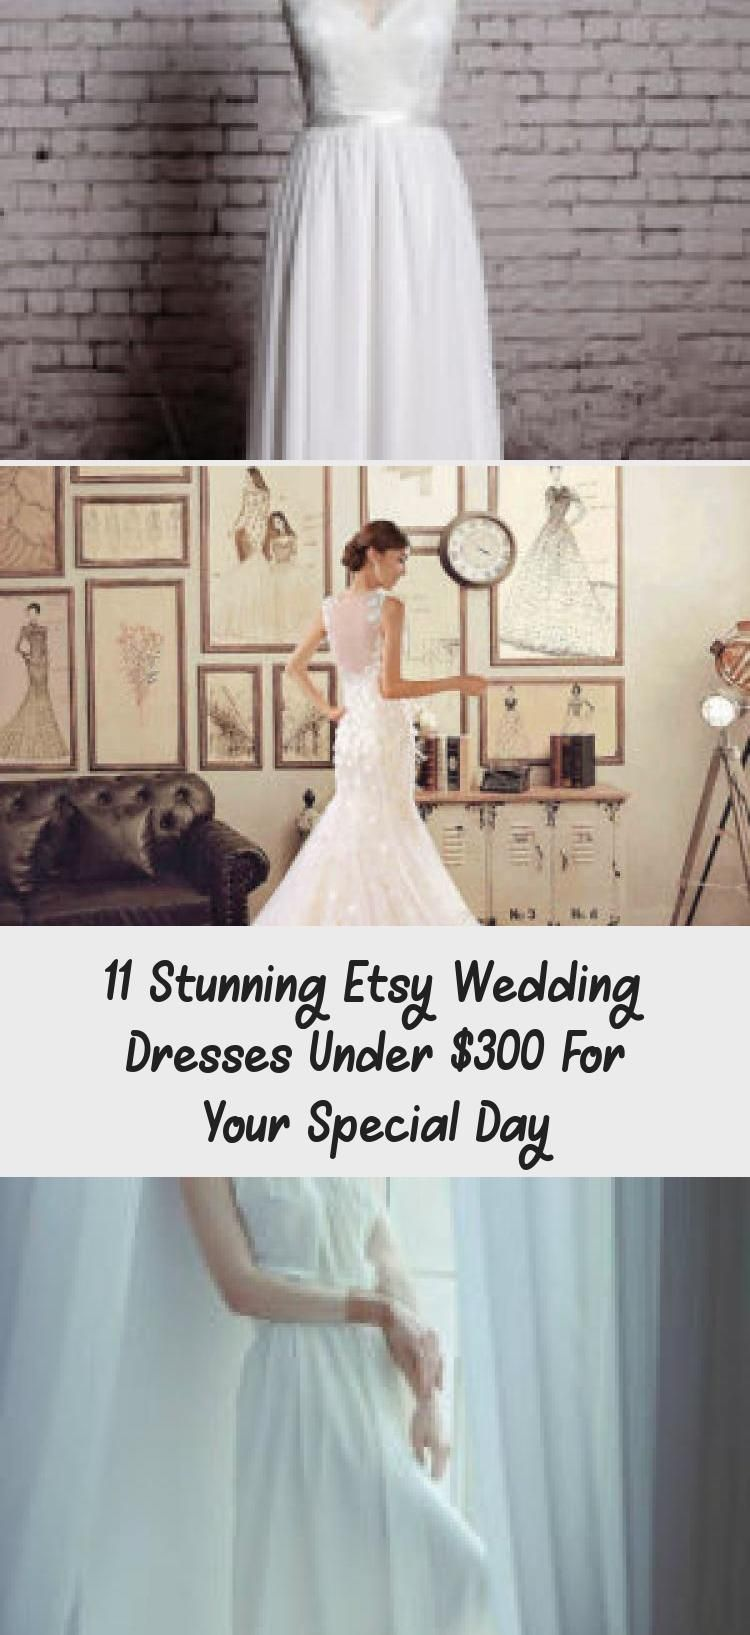 20 Stunning Etsy Wedding Dresses Under $20 For Your Special Day ...